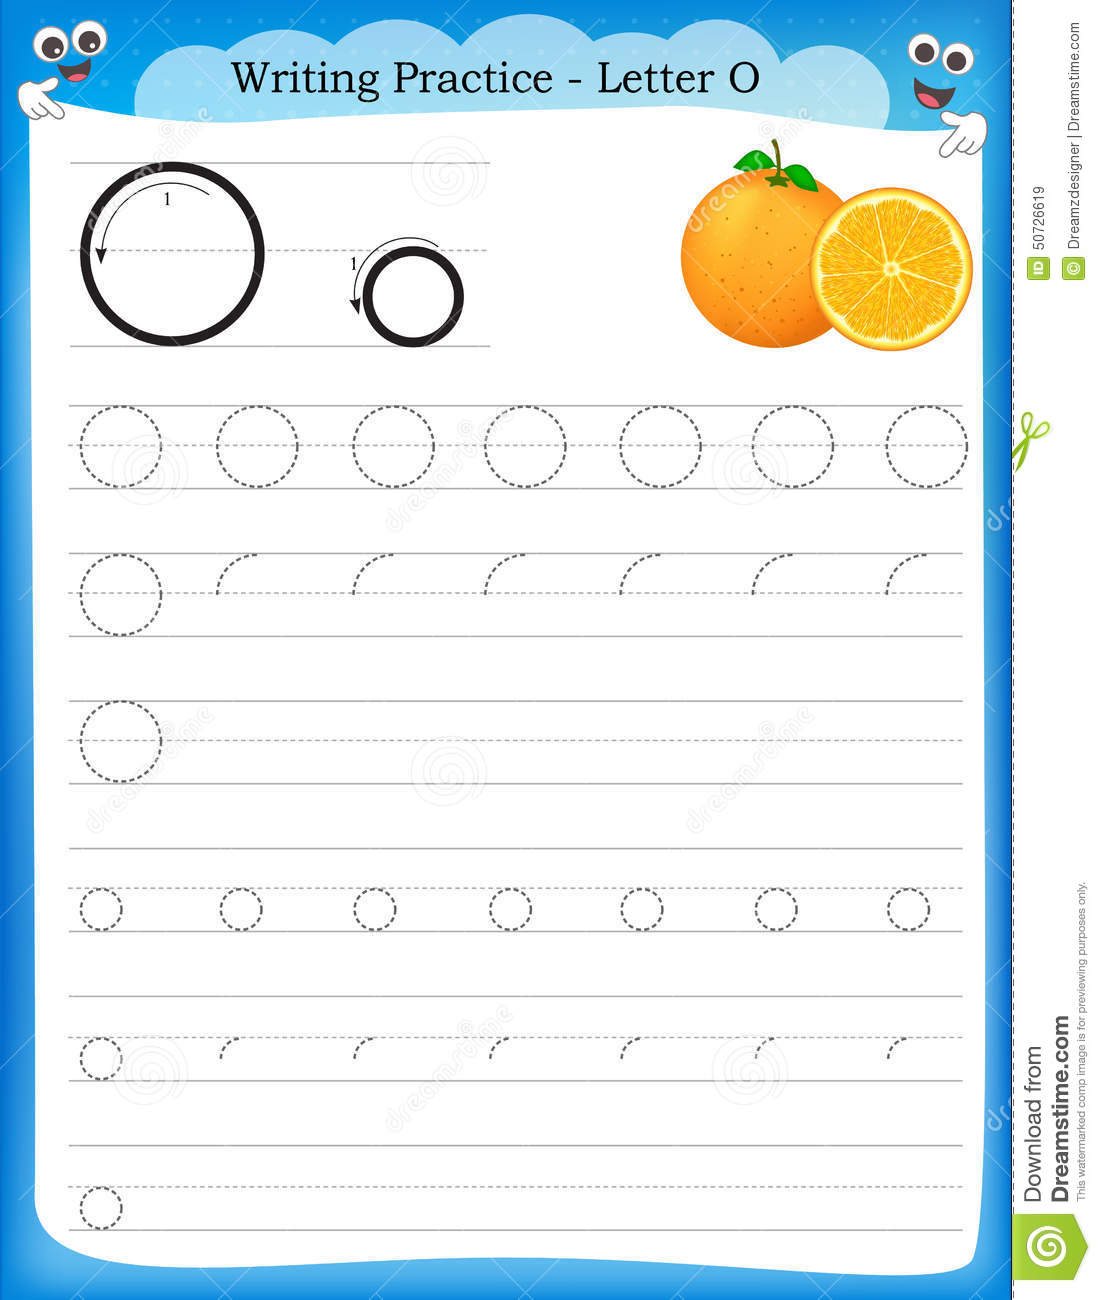 Oo Worksheet Printable